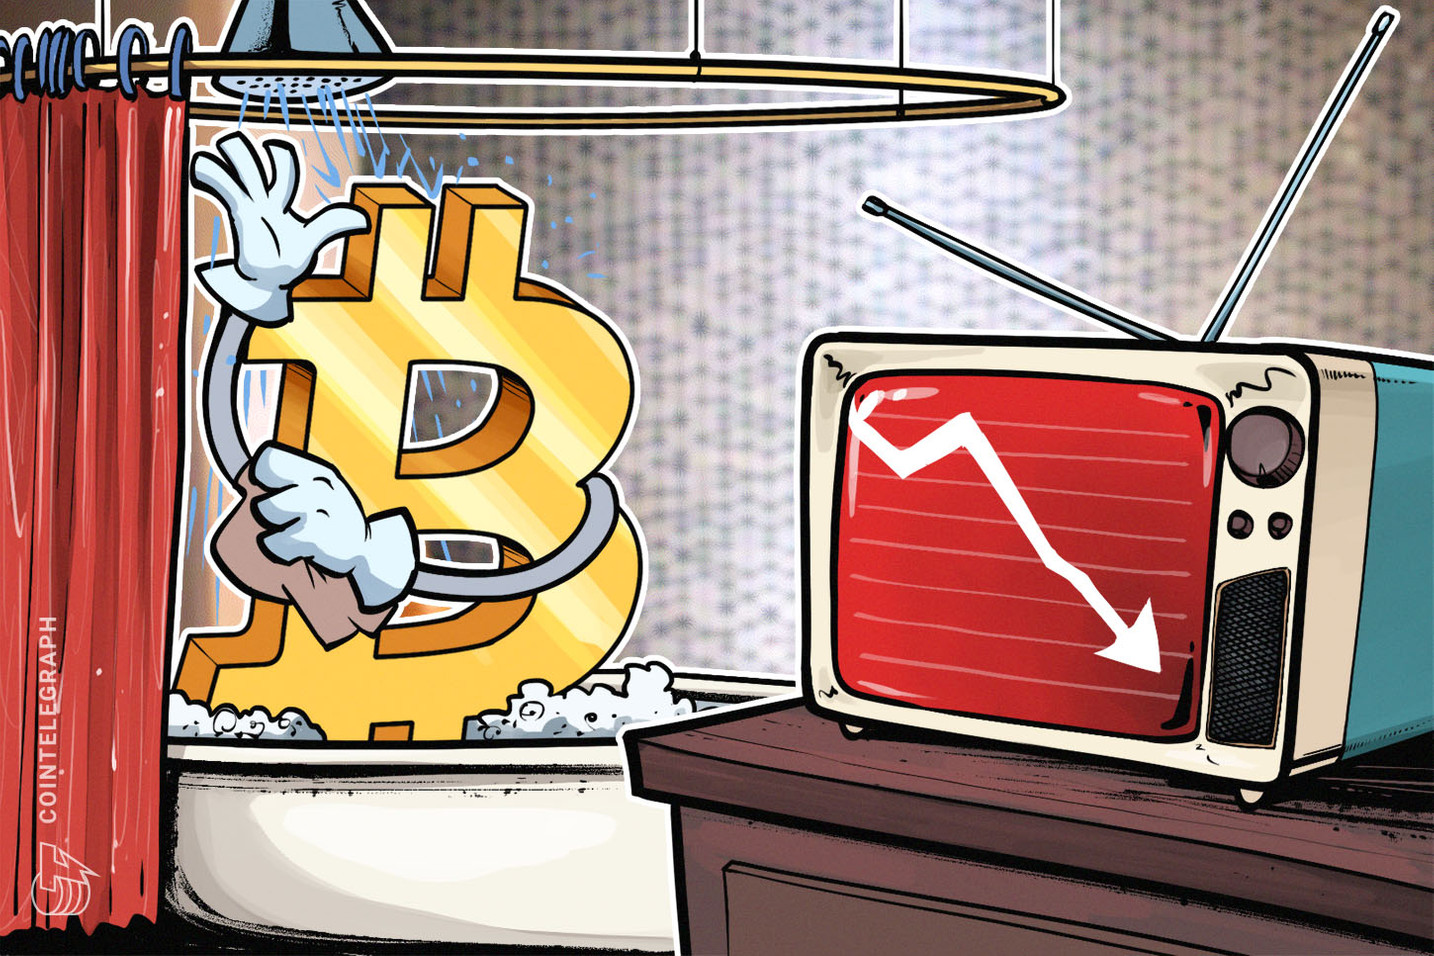 Bitcoin Price Retraces to $8.5K Going Into Last Week Before Halving